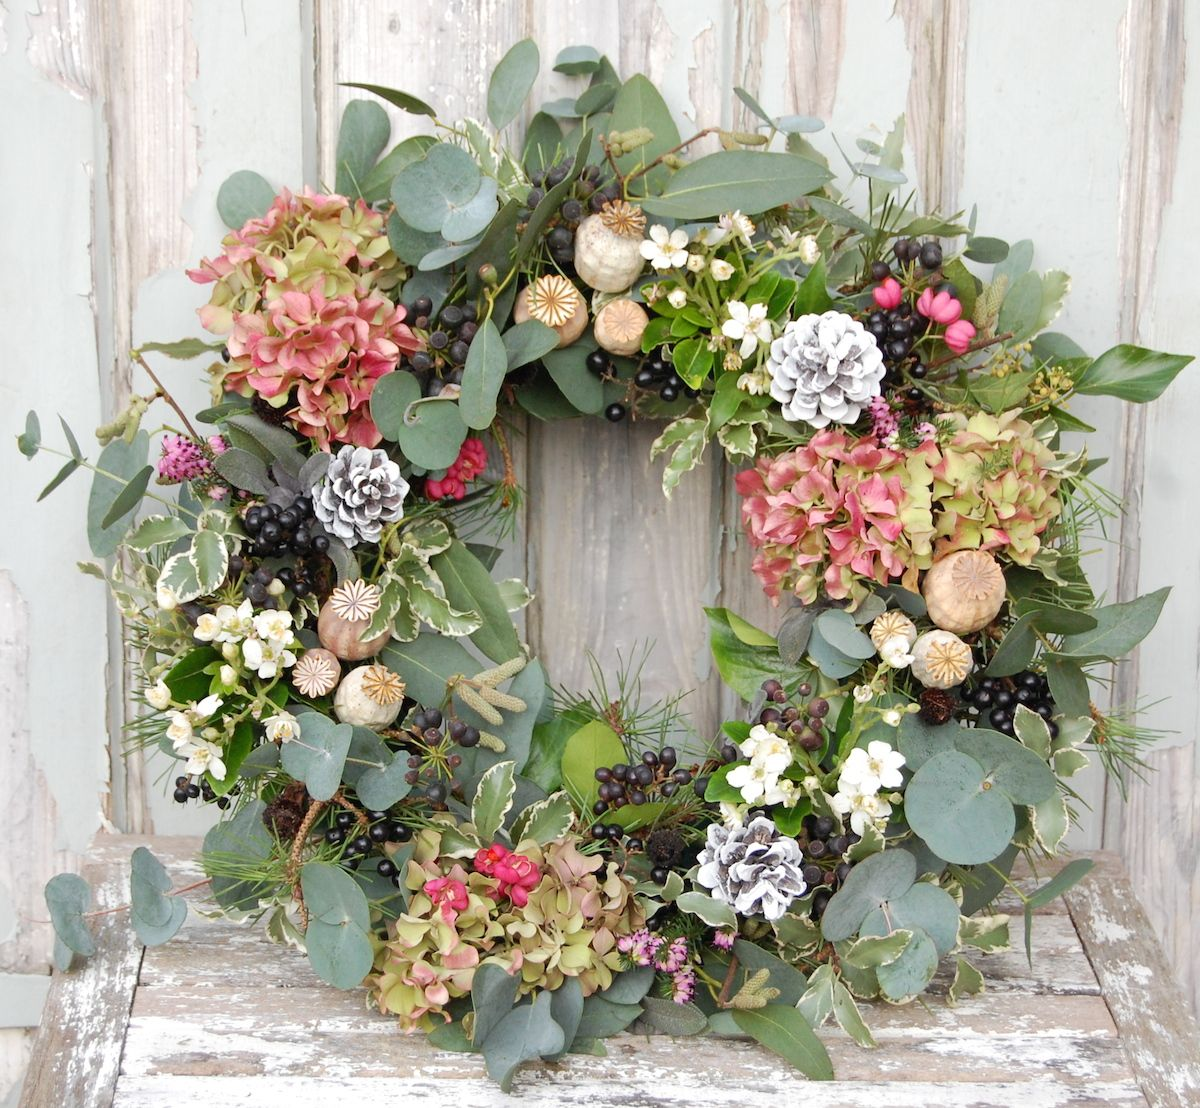 Photo of My homemade Christmas wreath for 2015 with eucalyptus, pine, poppy heads and hyd …